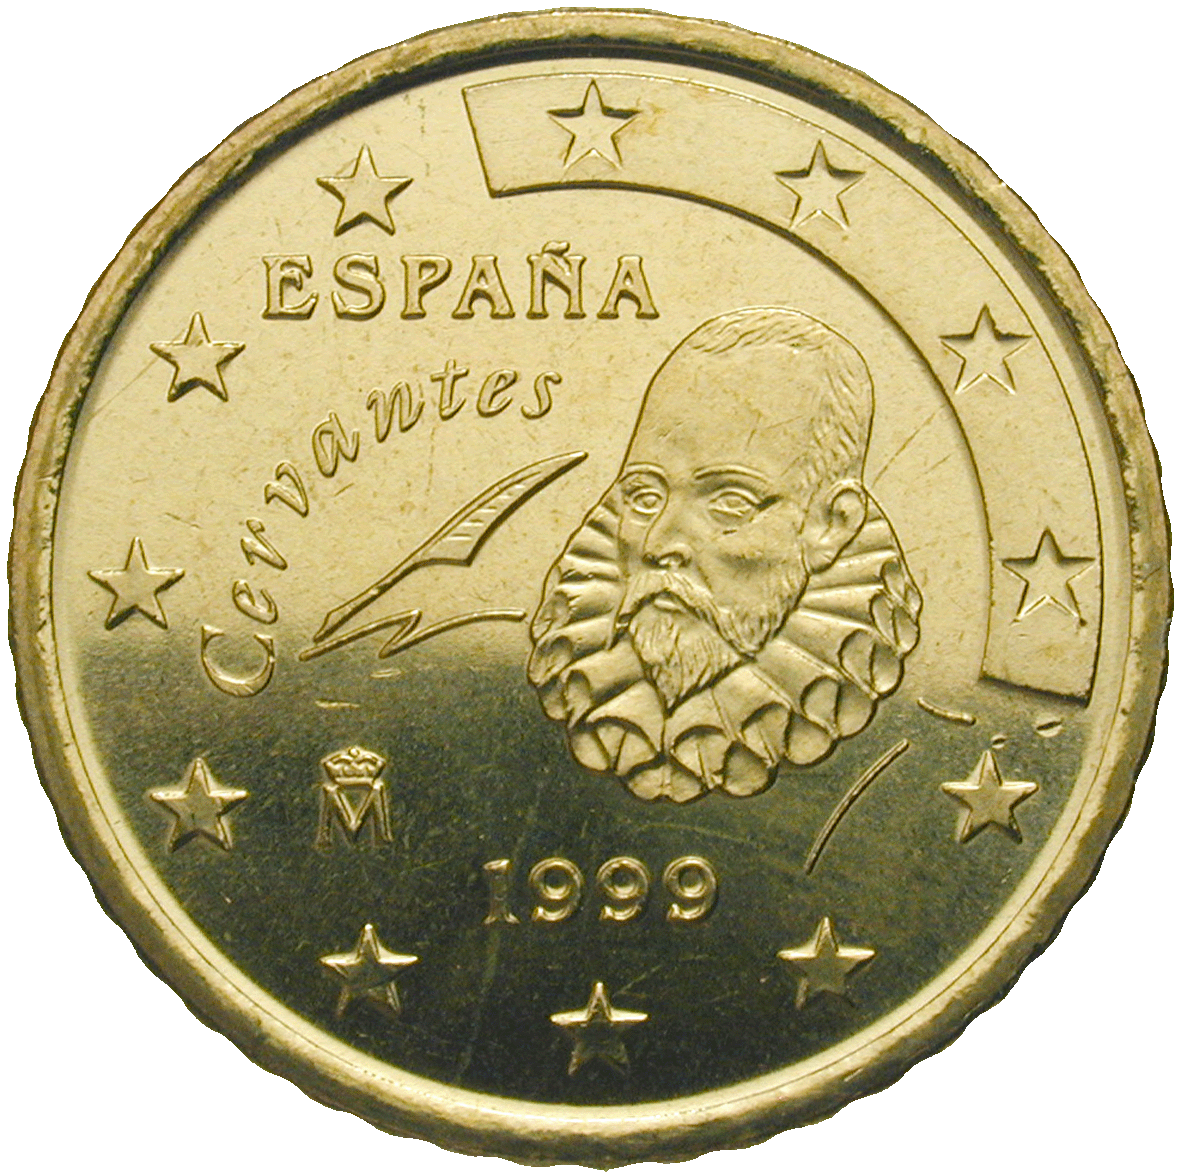 Kingdom of Spain, Juan Carlos, 50 Euro Cent 1999 (obverse)